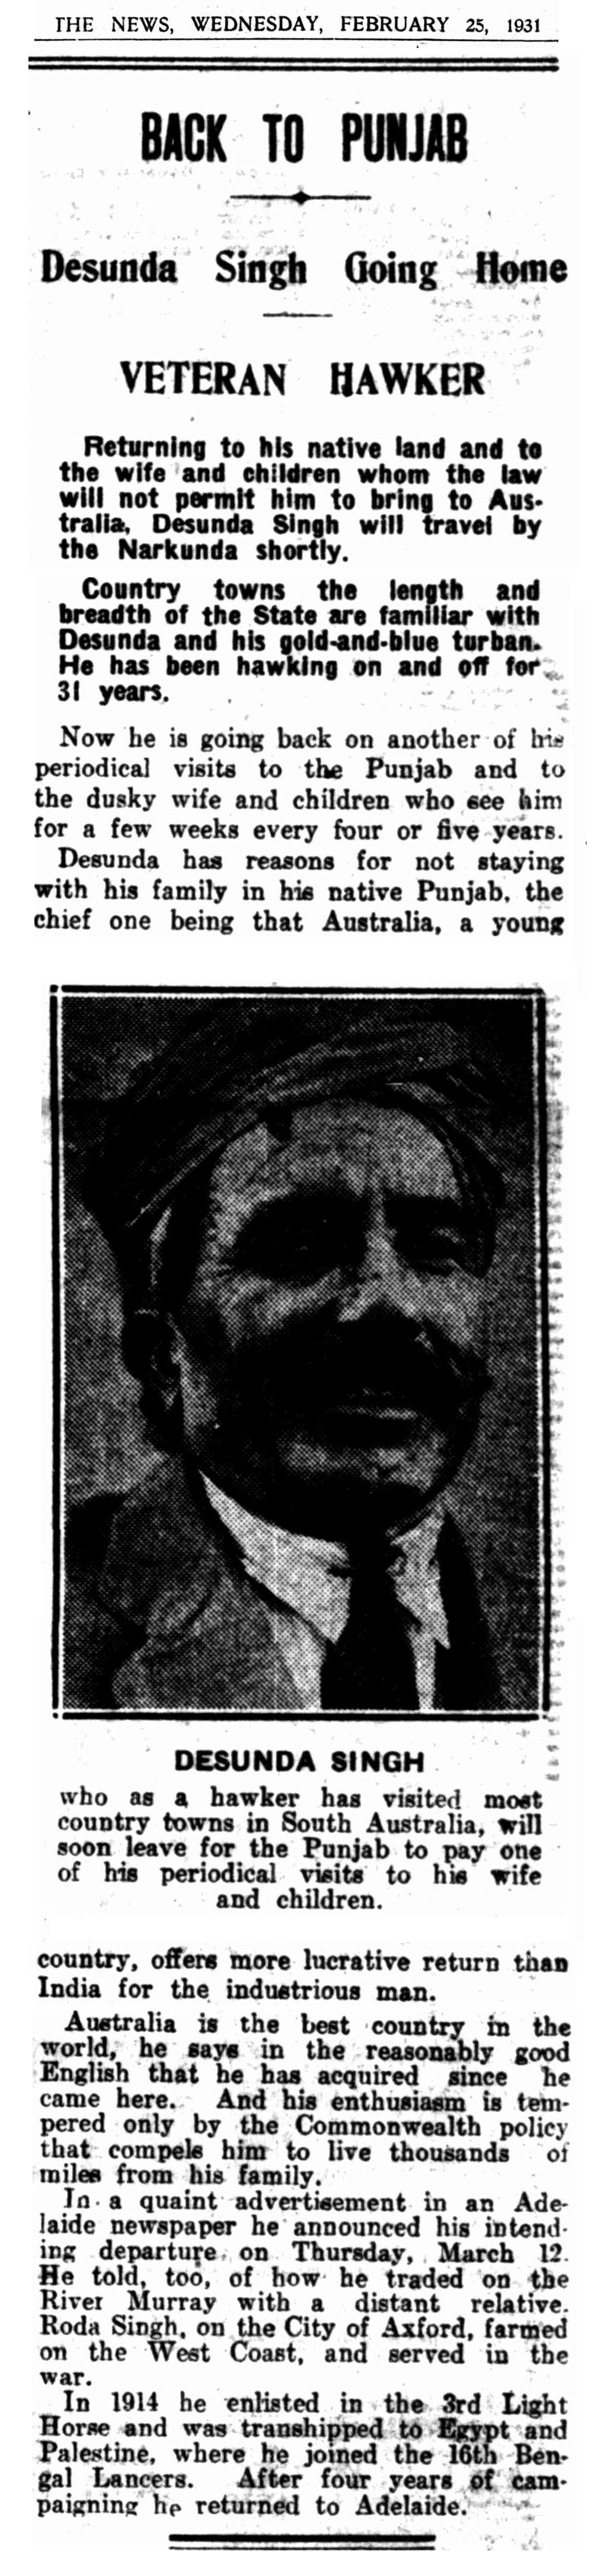 "Article taken from the Wednesday 25 February 1931 edition of ""The News"" a newspaper in Adelaide, South Australia. To see original source please click on link below:  http://nla.gov.au/nla.news-article128998519"